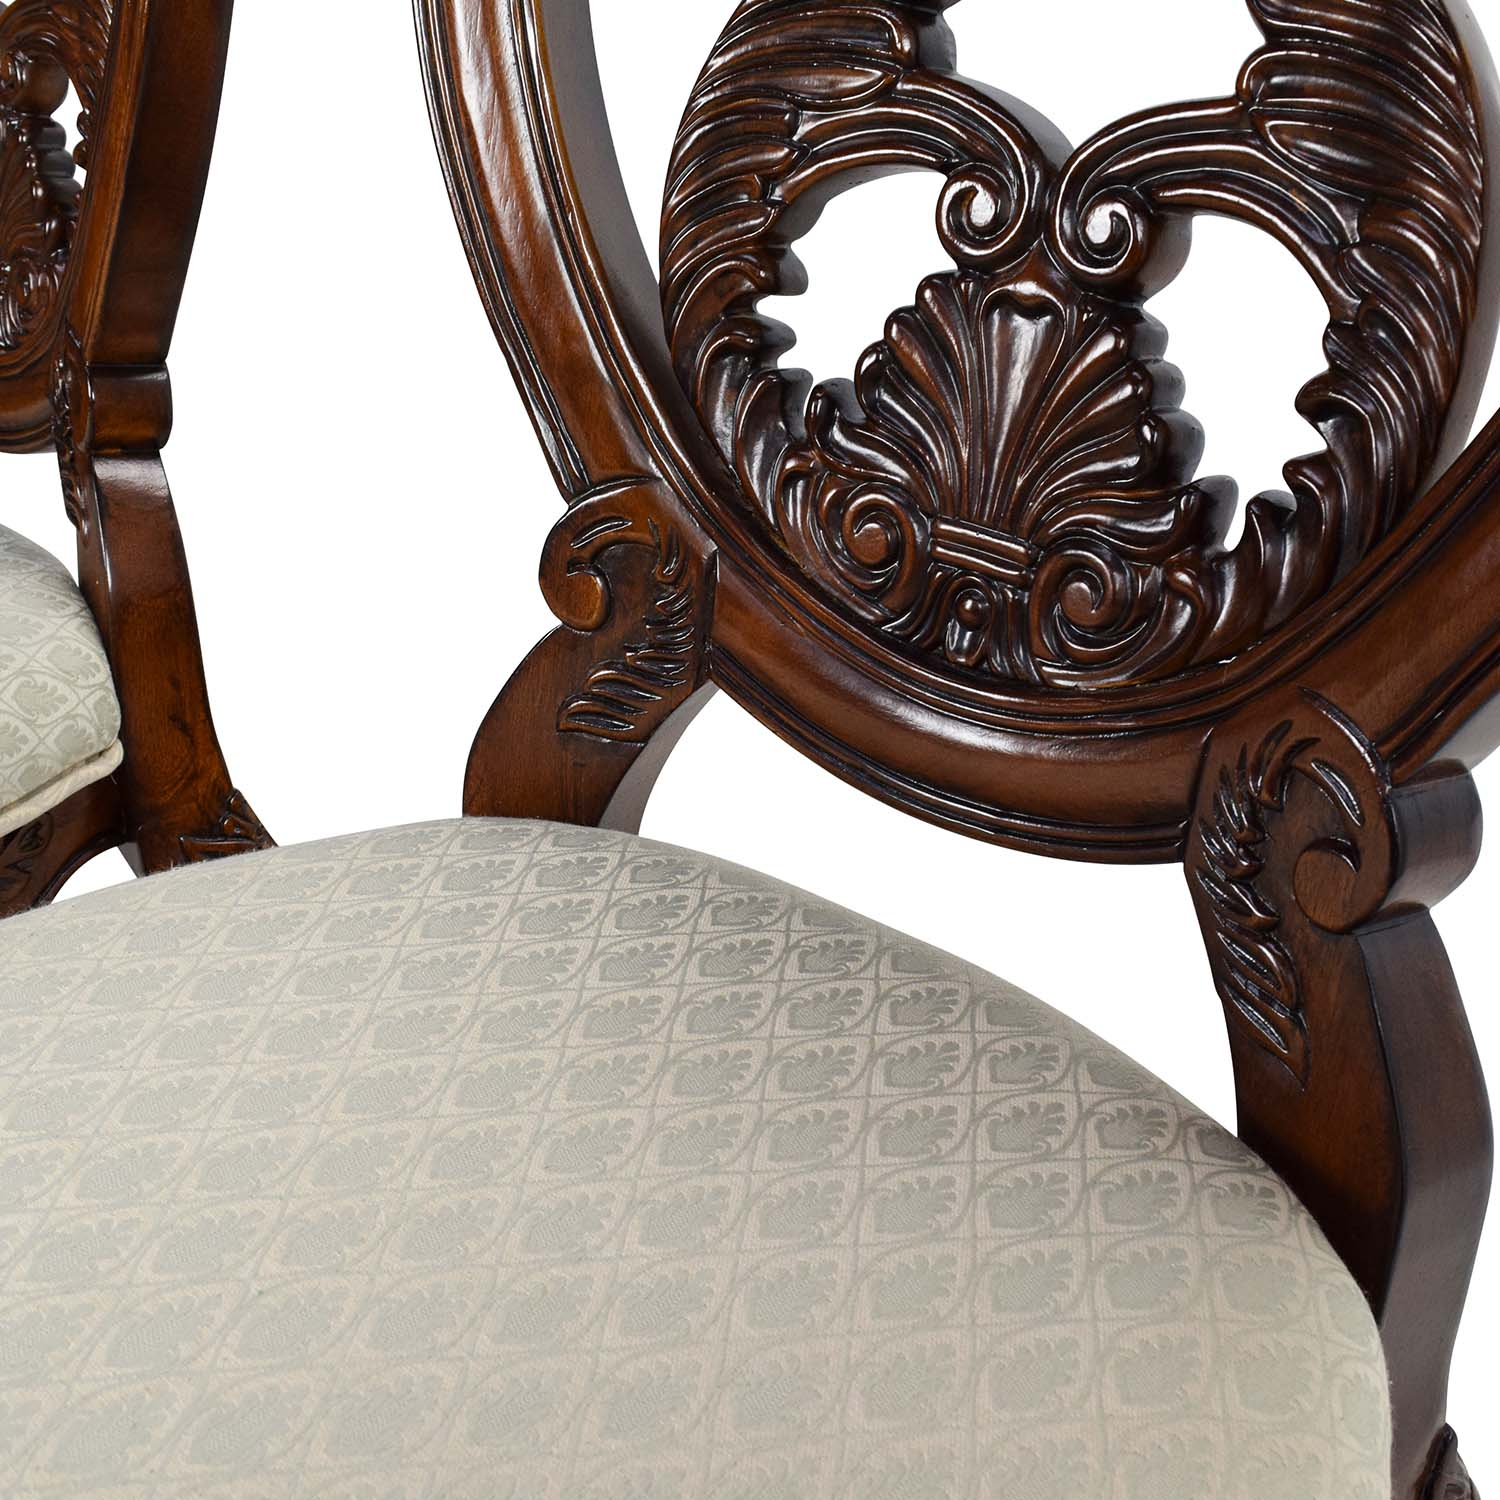 Traditional Dining Chairs 90% off - tuscany ii tuscany ii traditional dining chair pair / chairs